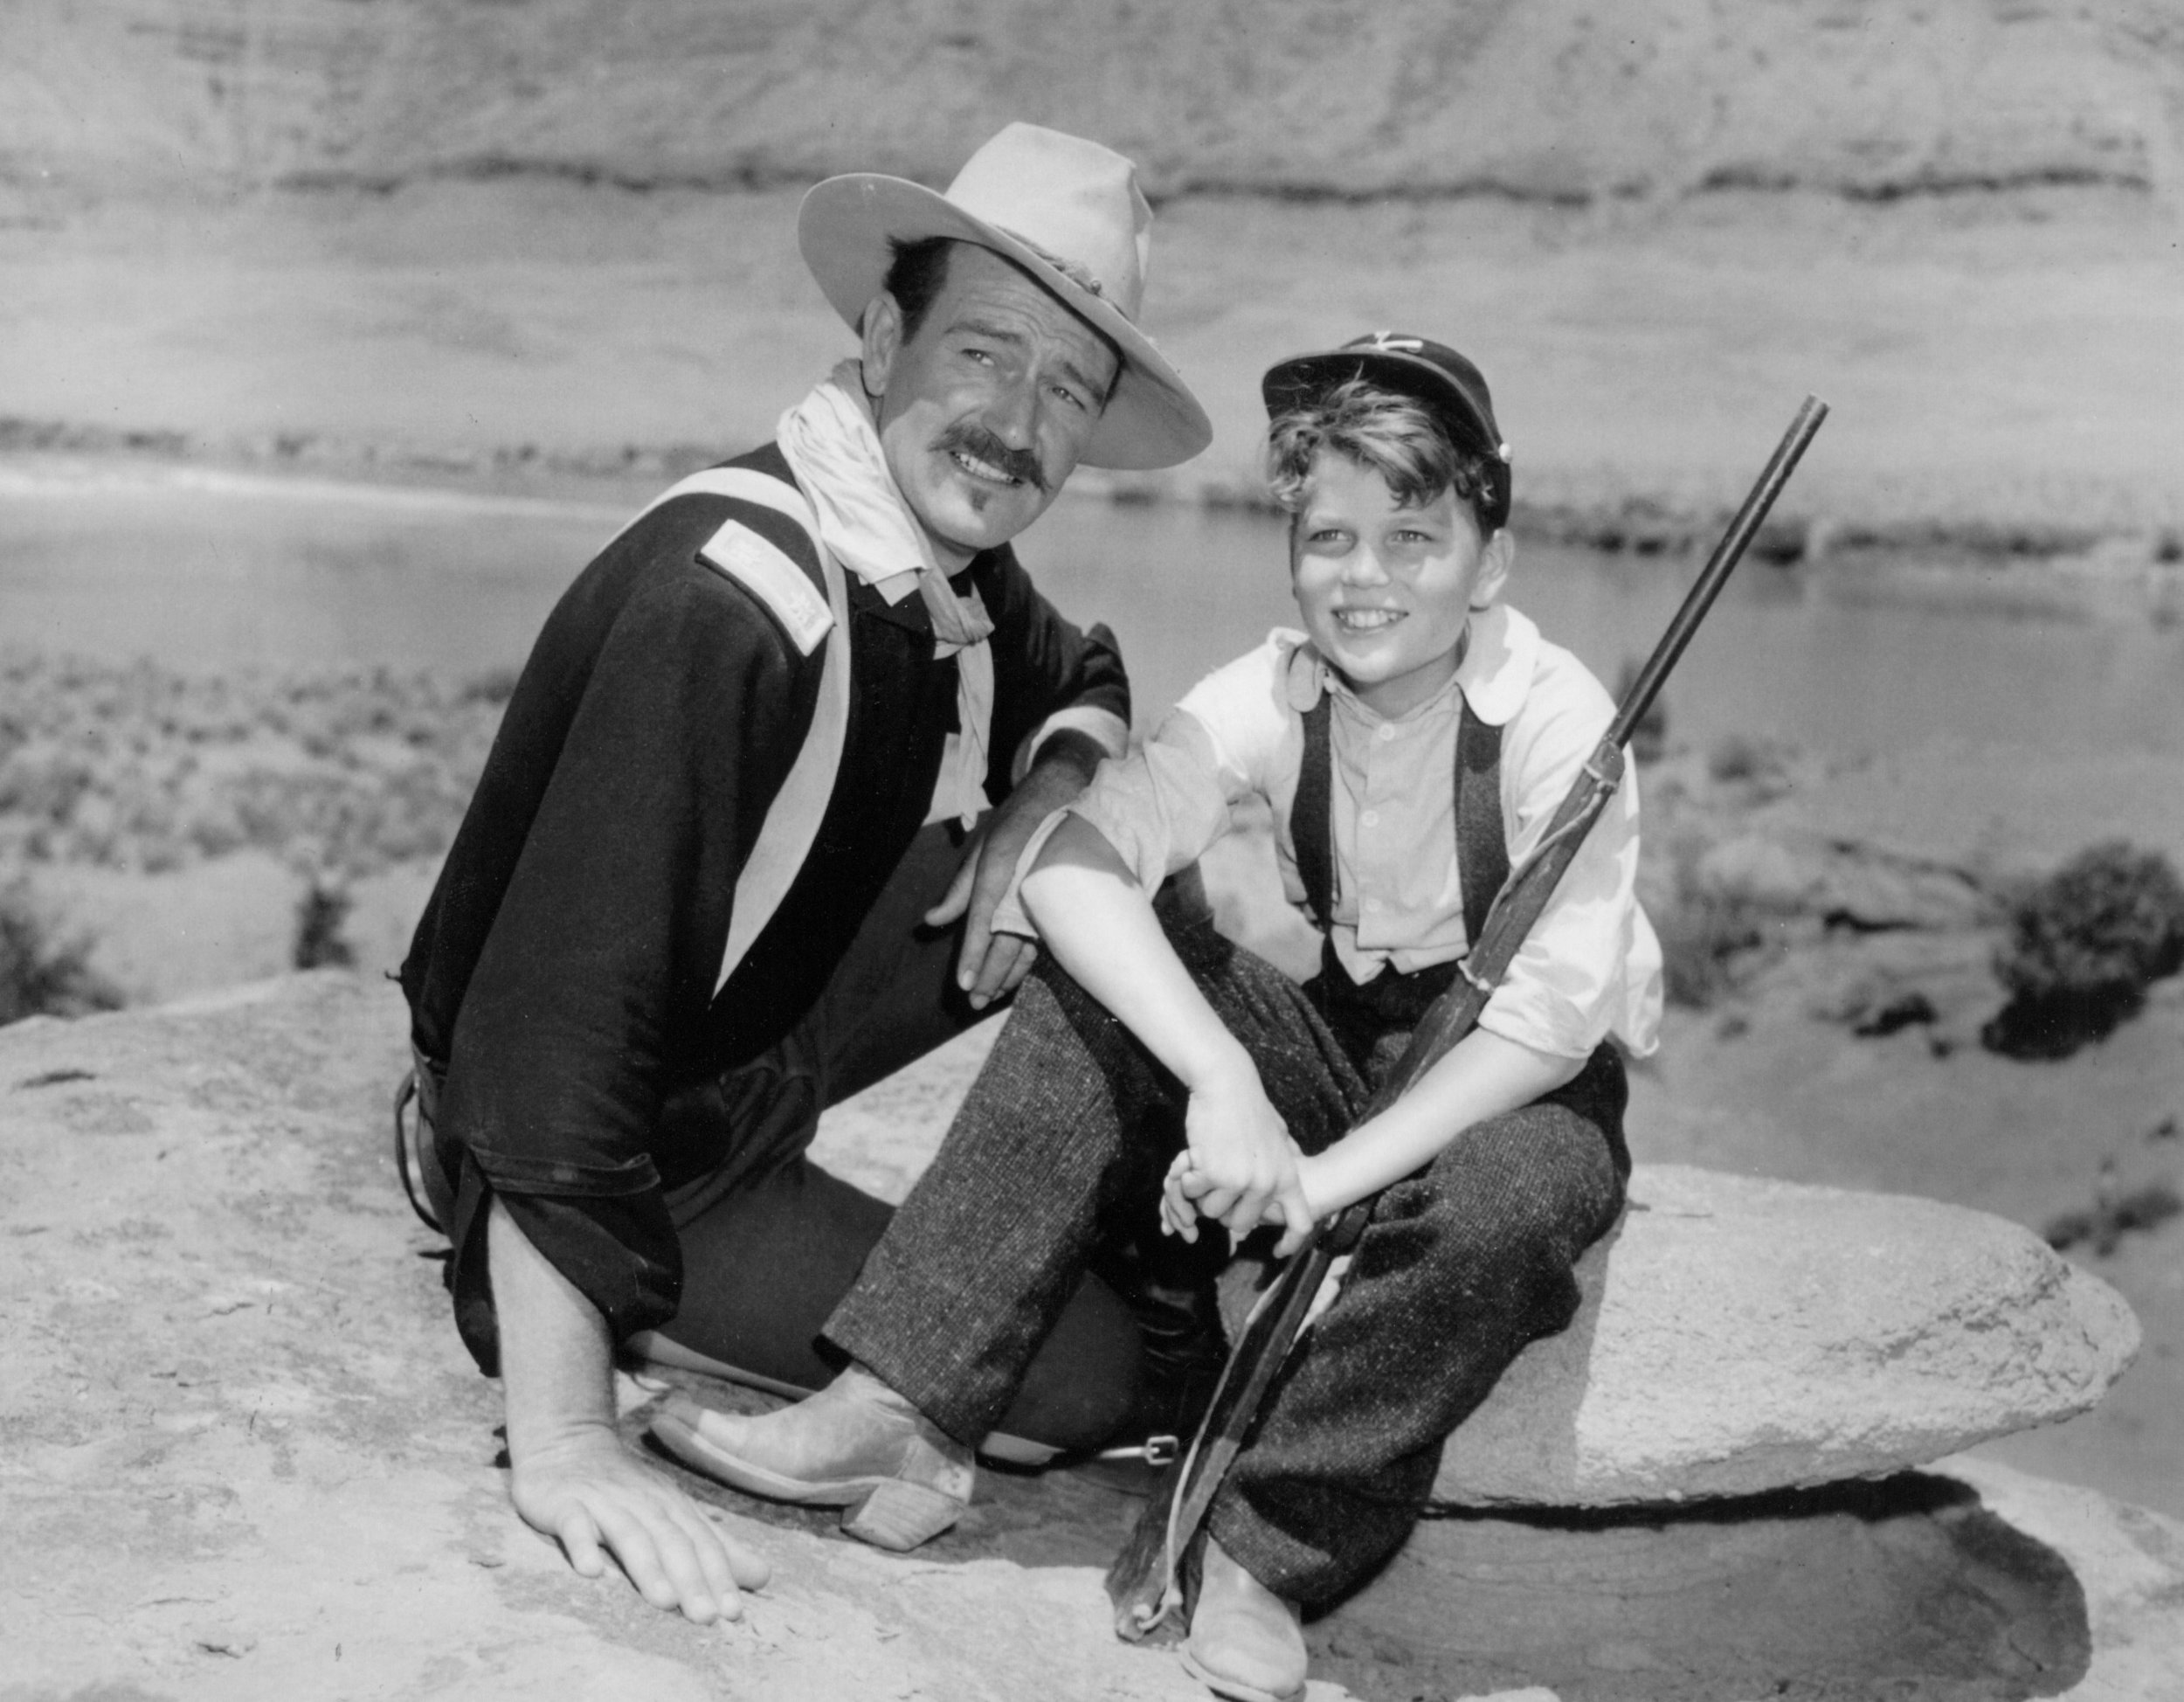 John Wayne (left) and Patrick Wayne (right) on the set of  Rio Grande  in 1950. Photo courtesy of John Wayne Enterprises